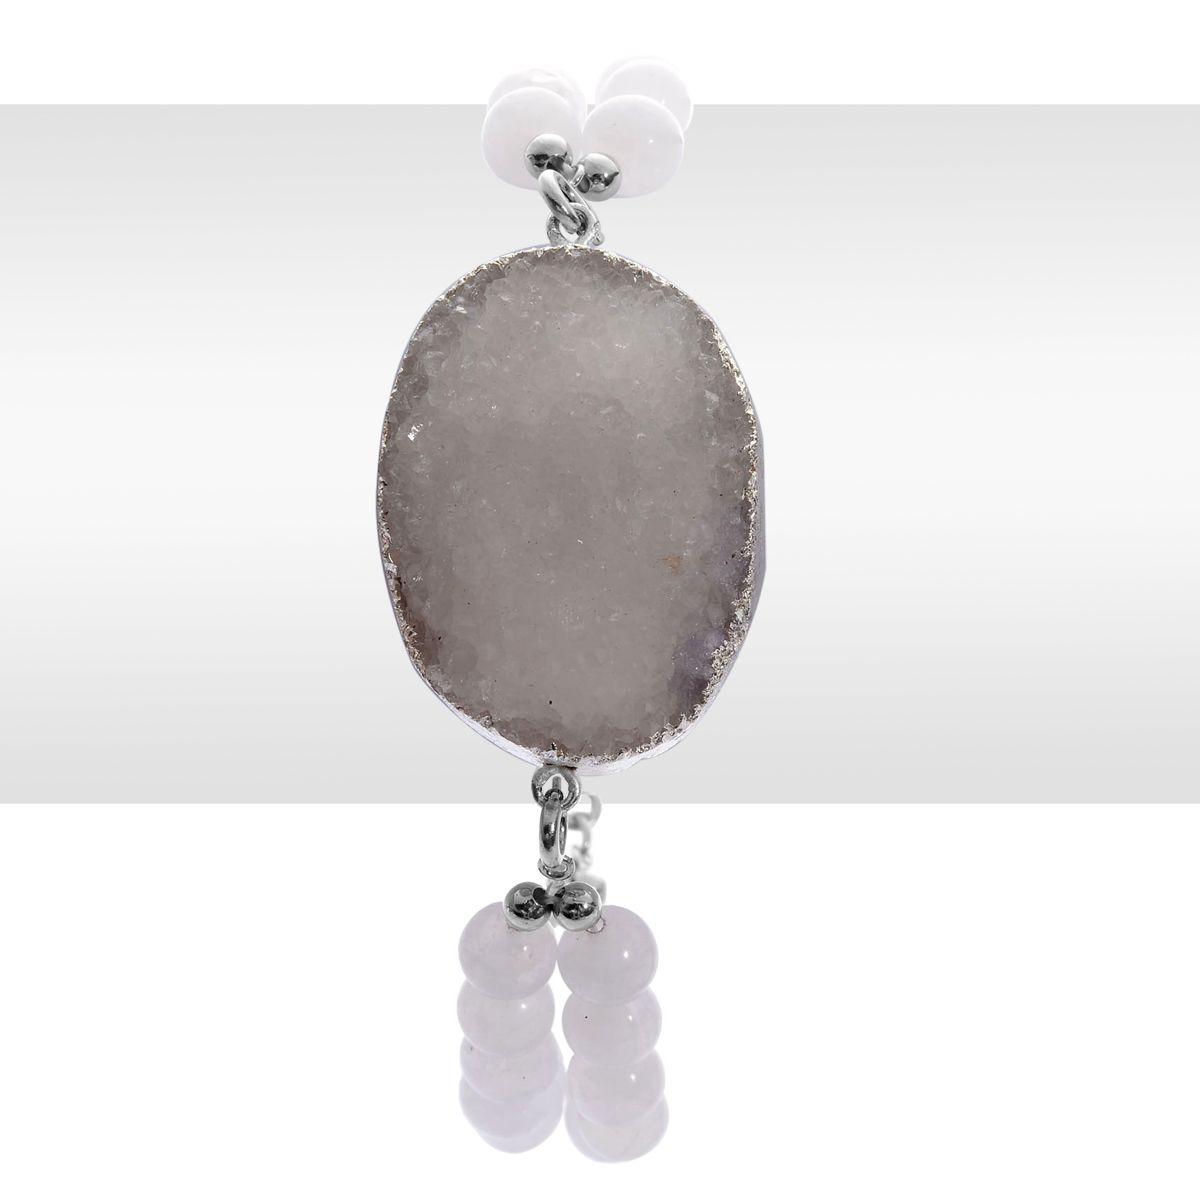 Stainless steel dyed drusy white quartzite bezel set solitaire